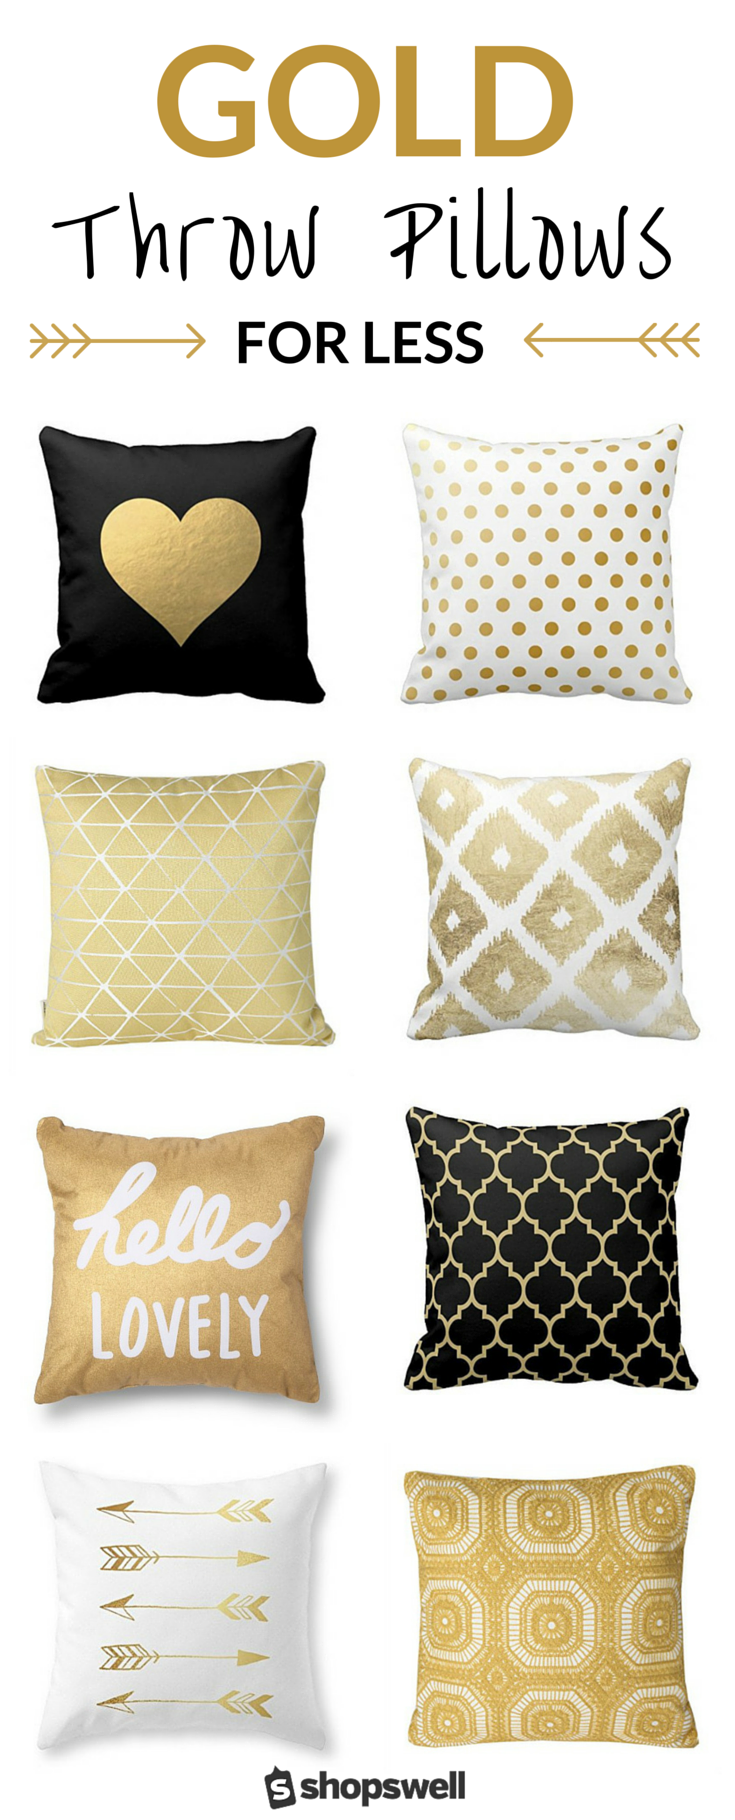 Cheap Decorative Pillows Under $10 Pleasing The Midas Touch 20 Fabulously Affordable Gold Throw Pillows 2018